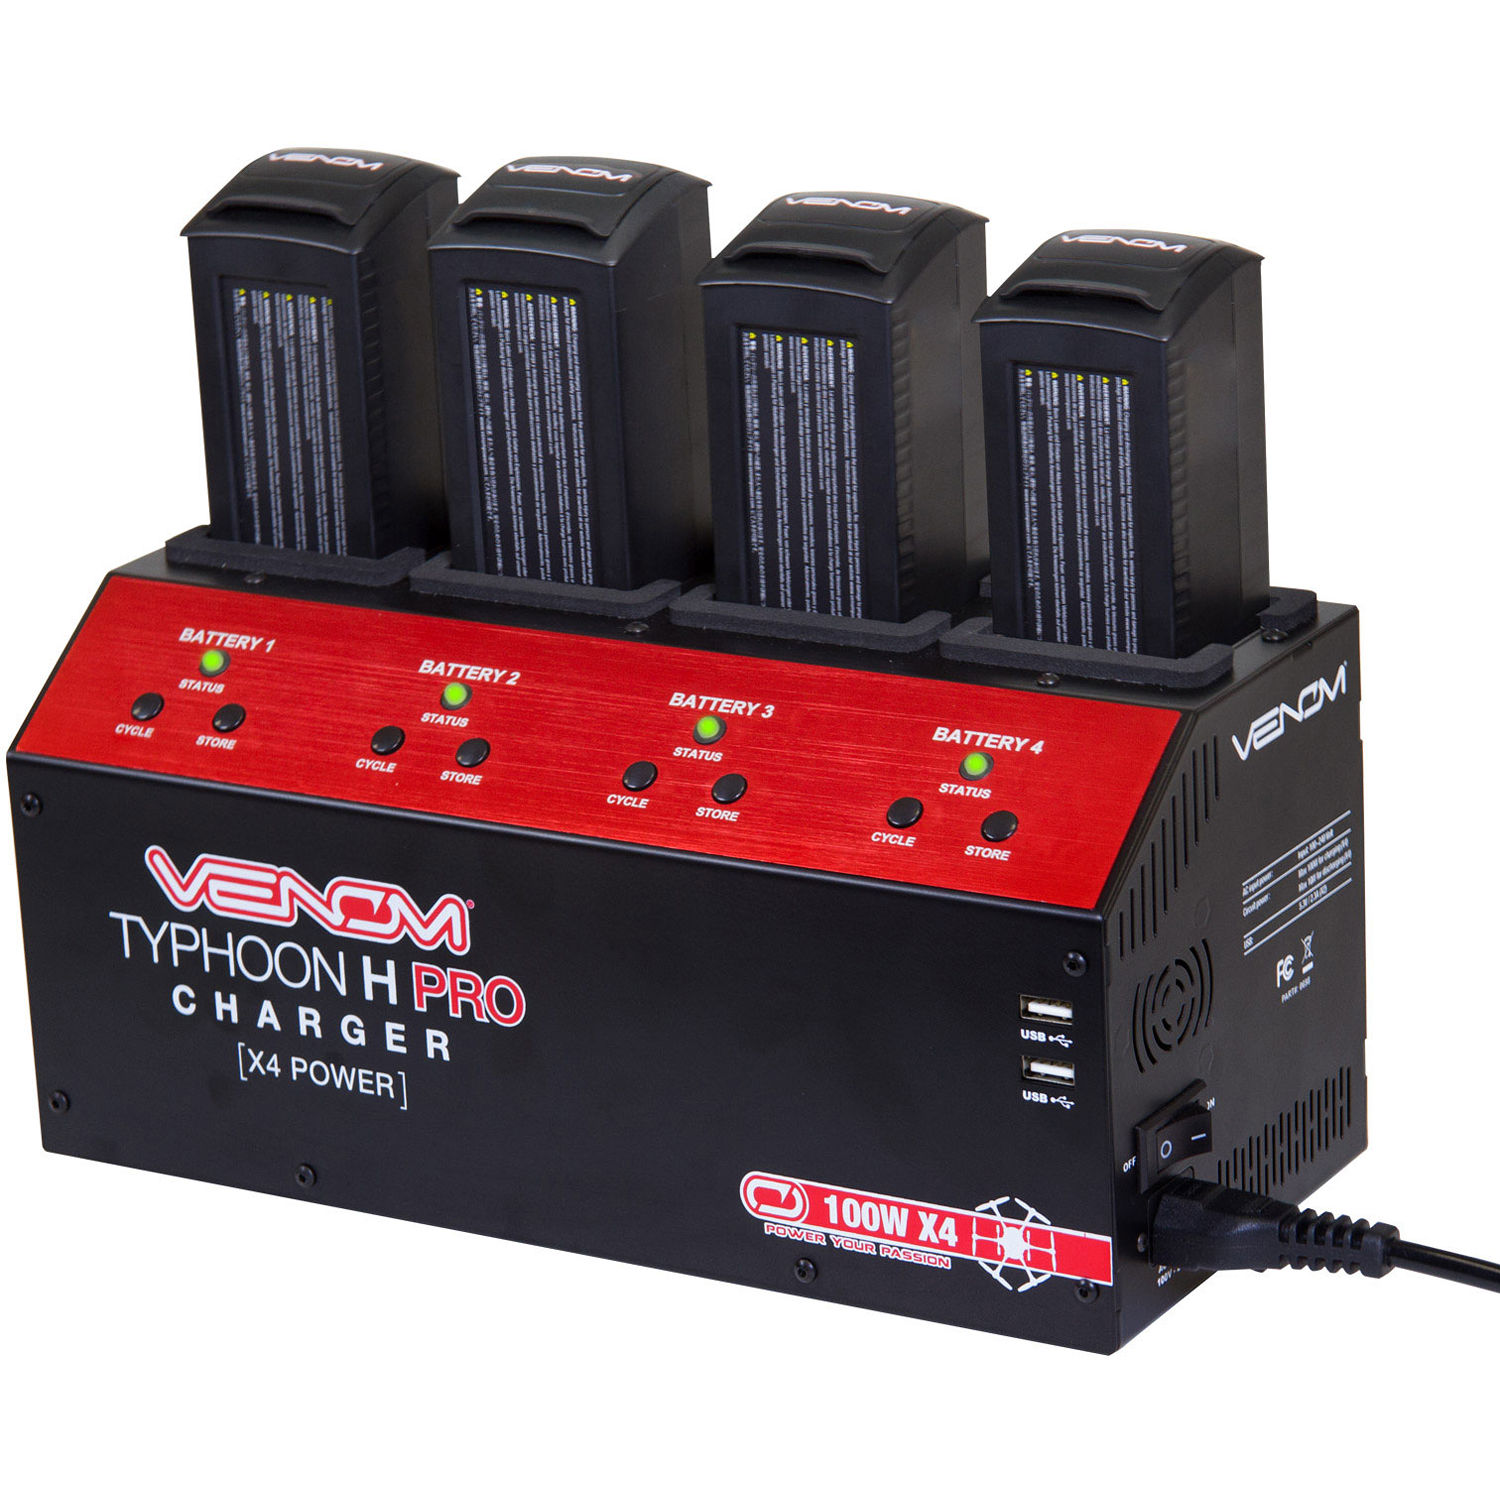 Venom Group 4-Port Battery Balance Charger for YUNEEC 0698 B&H